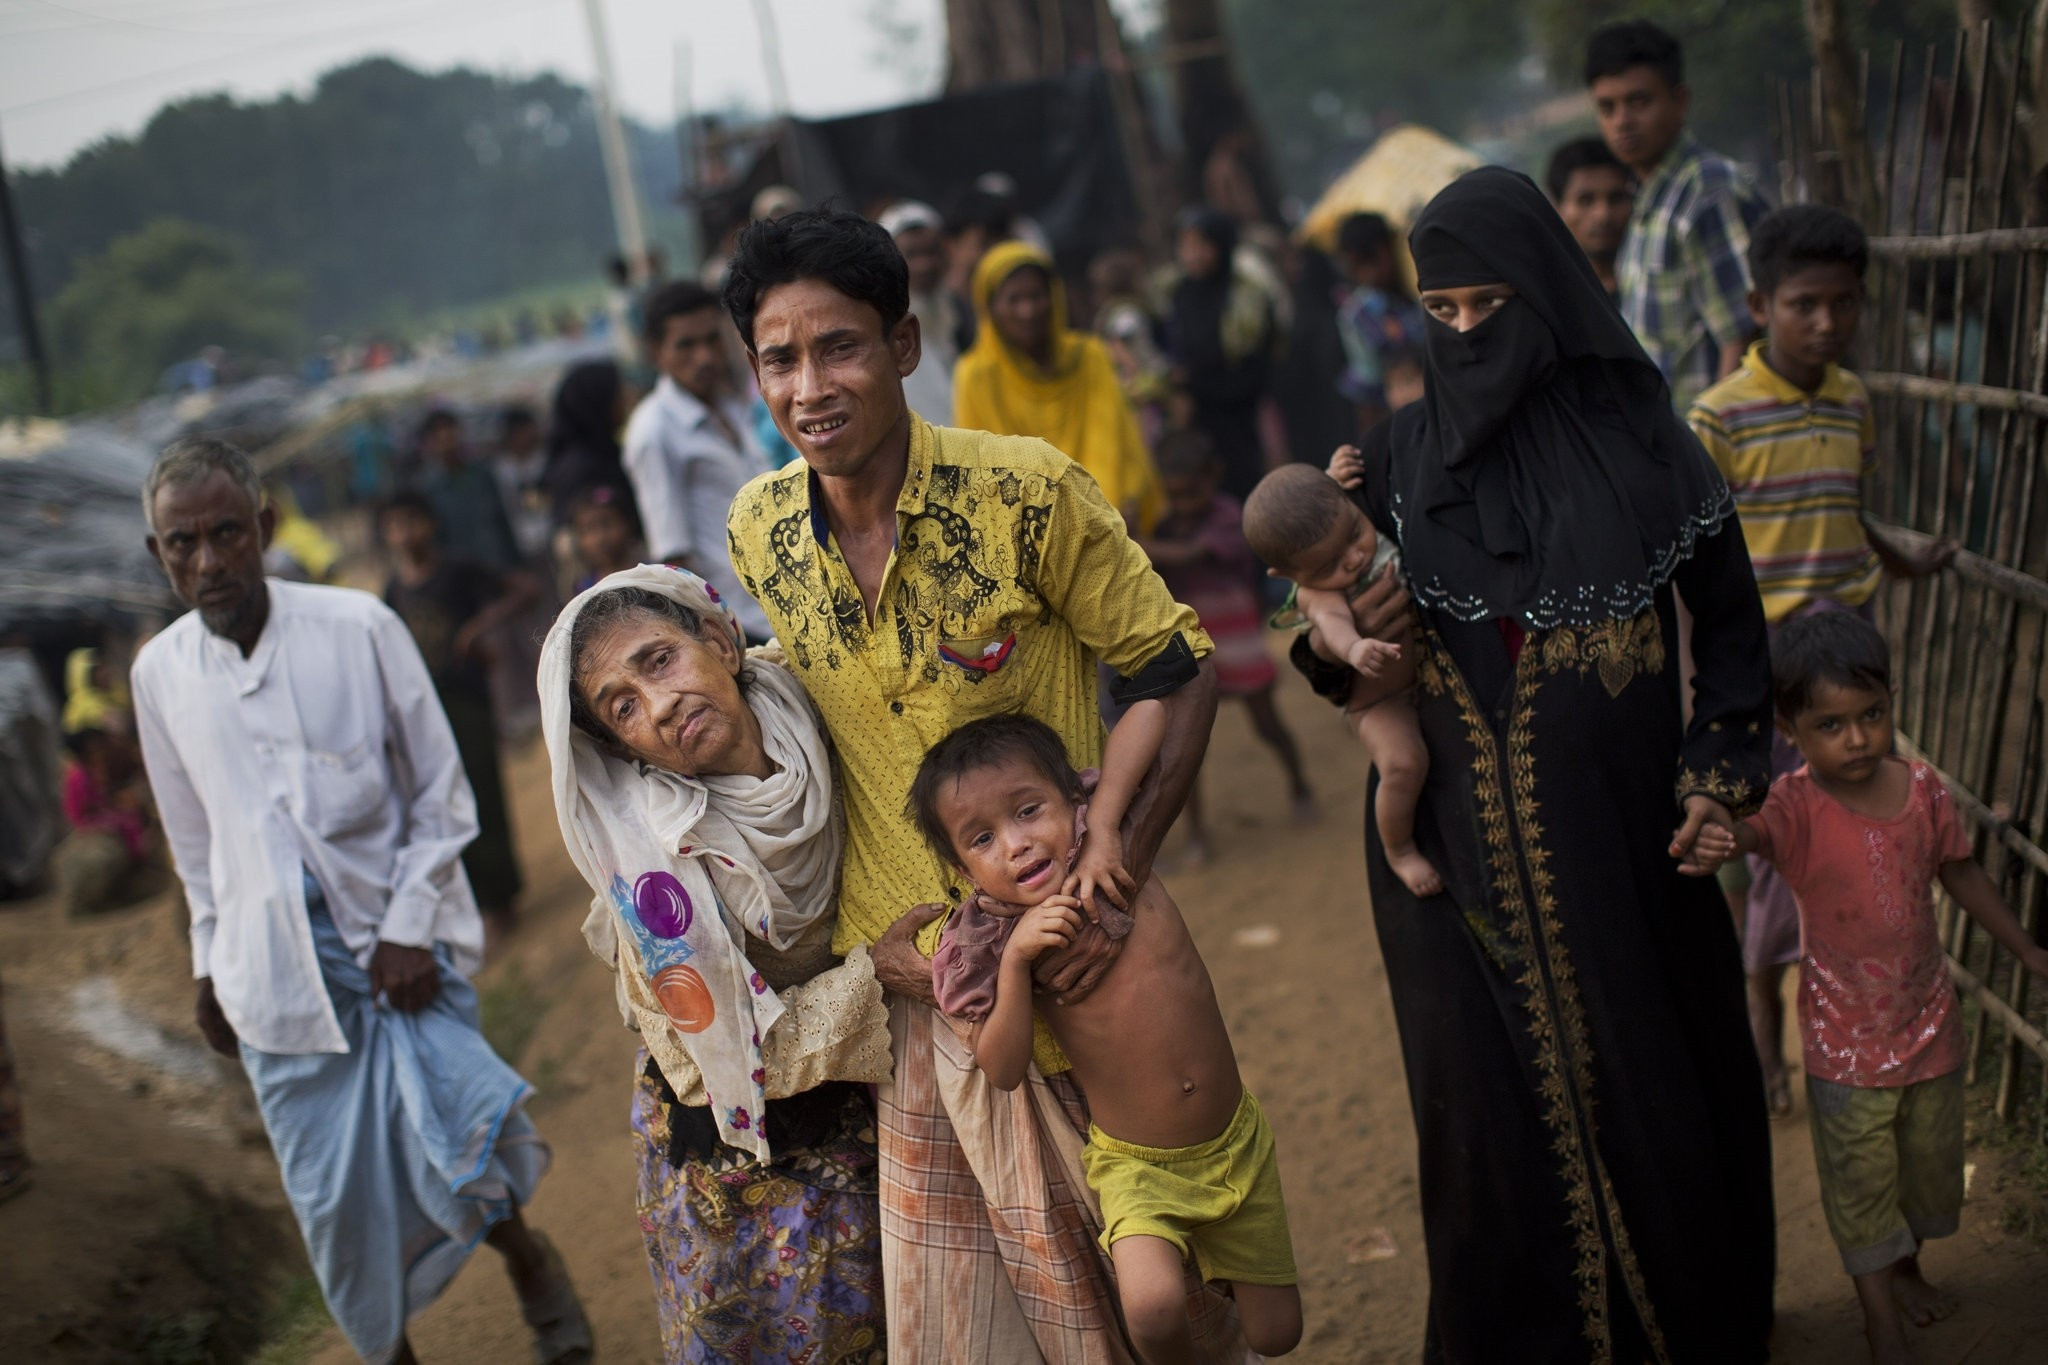 A Rohingya helps an elderly family member and a child as they arrive at Kutupalong refugee camp after crossing from Myanmmar to the Bangladesh side of the border. (AP Photo)